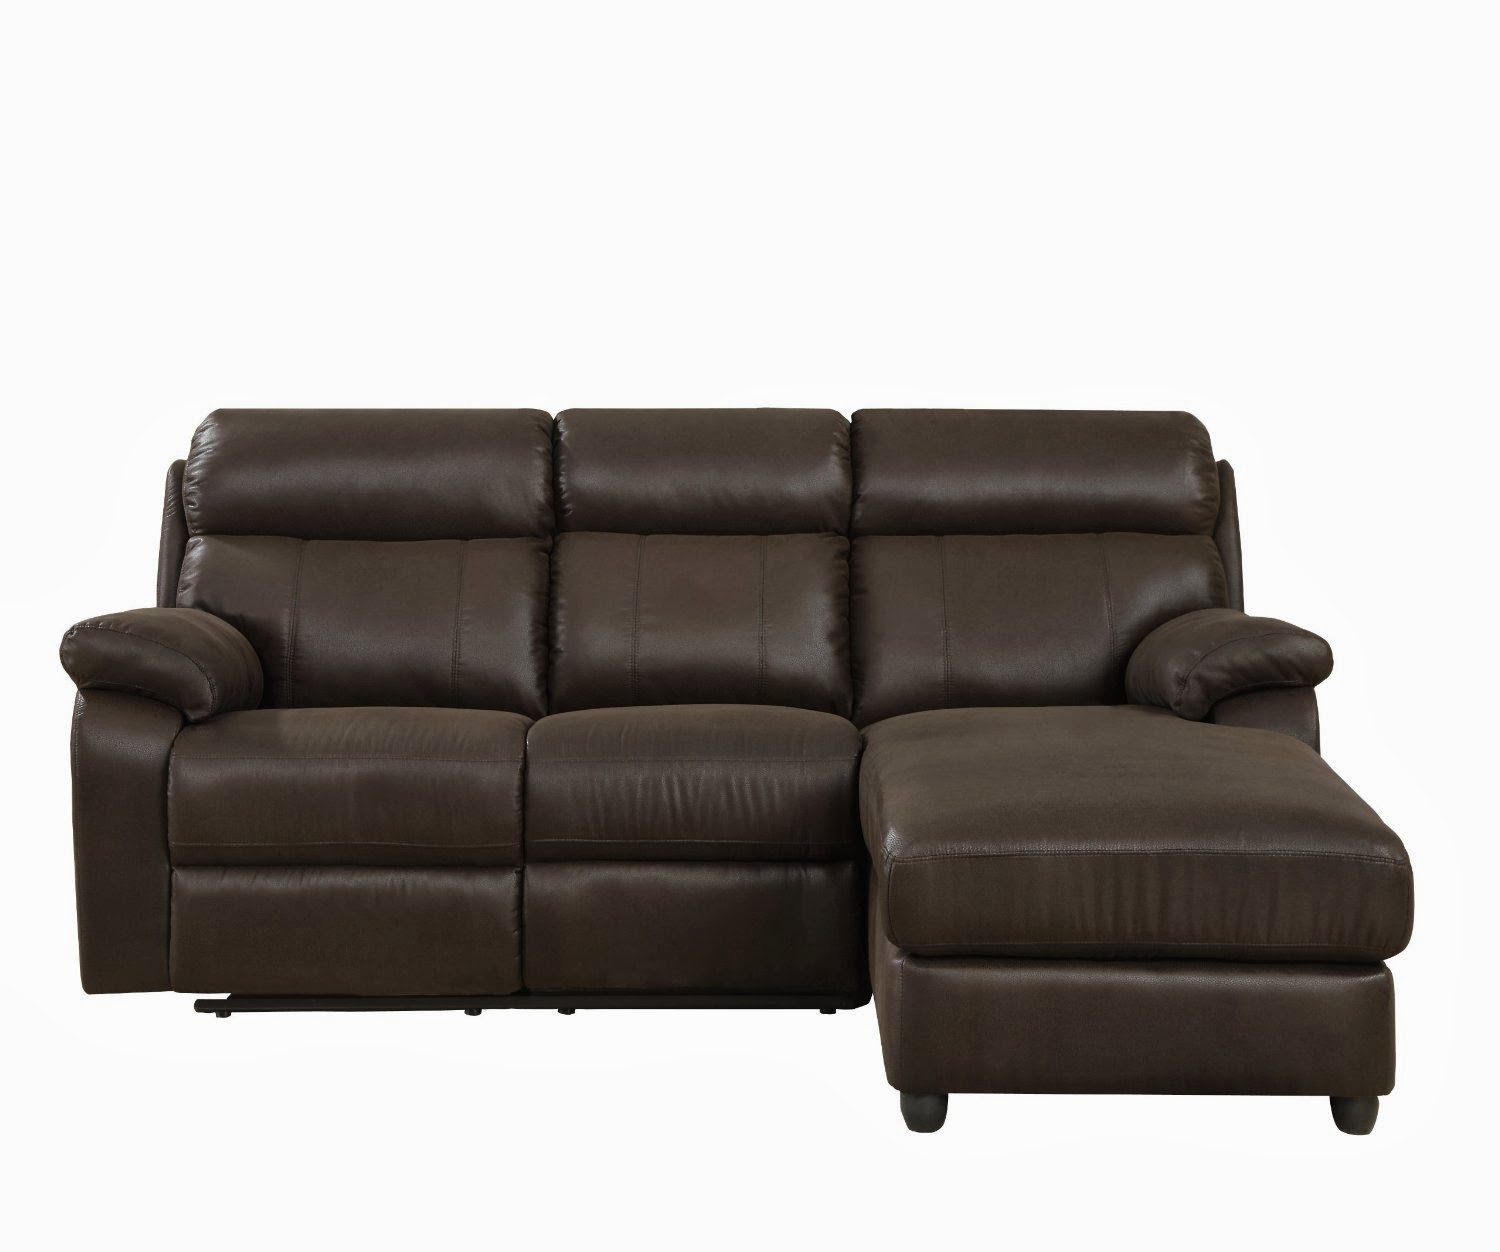 Small Sectional Sofas Reviews: Small Leather Sectional Sofa